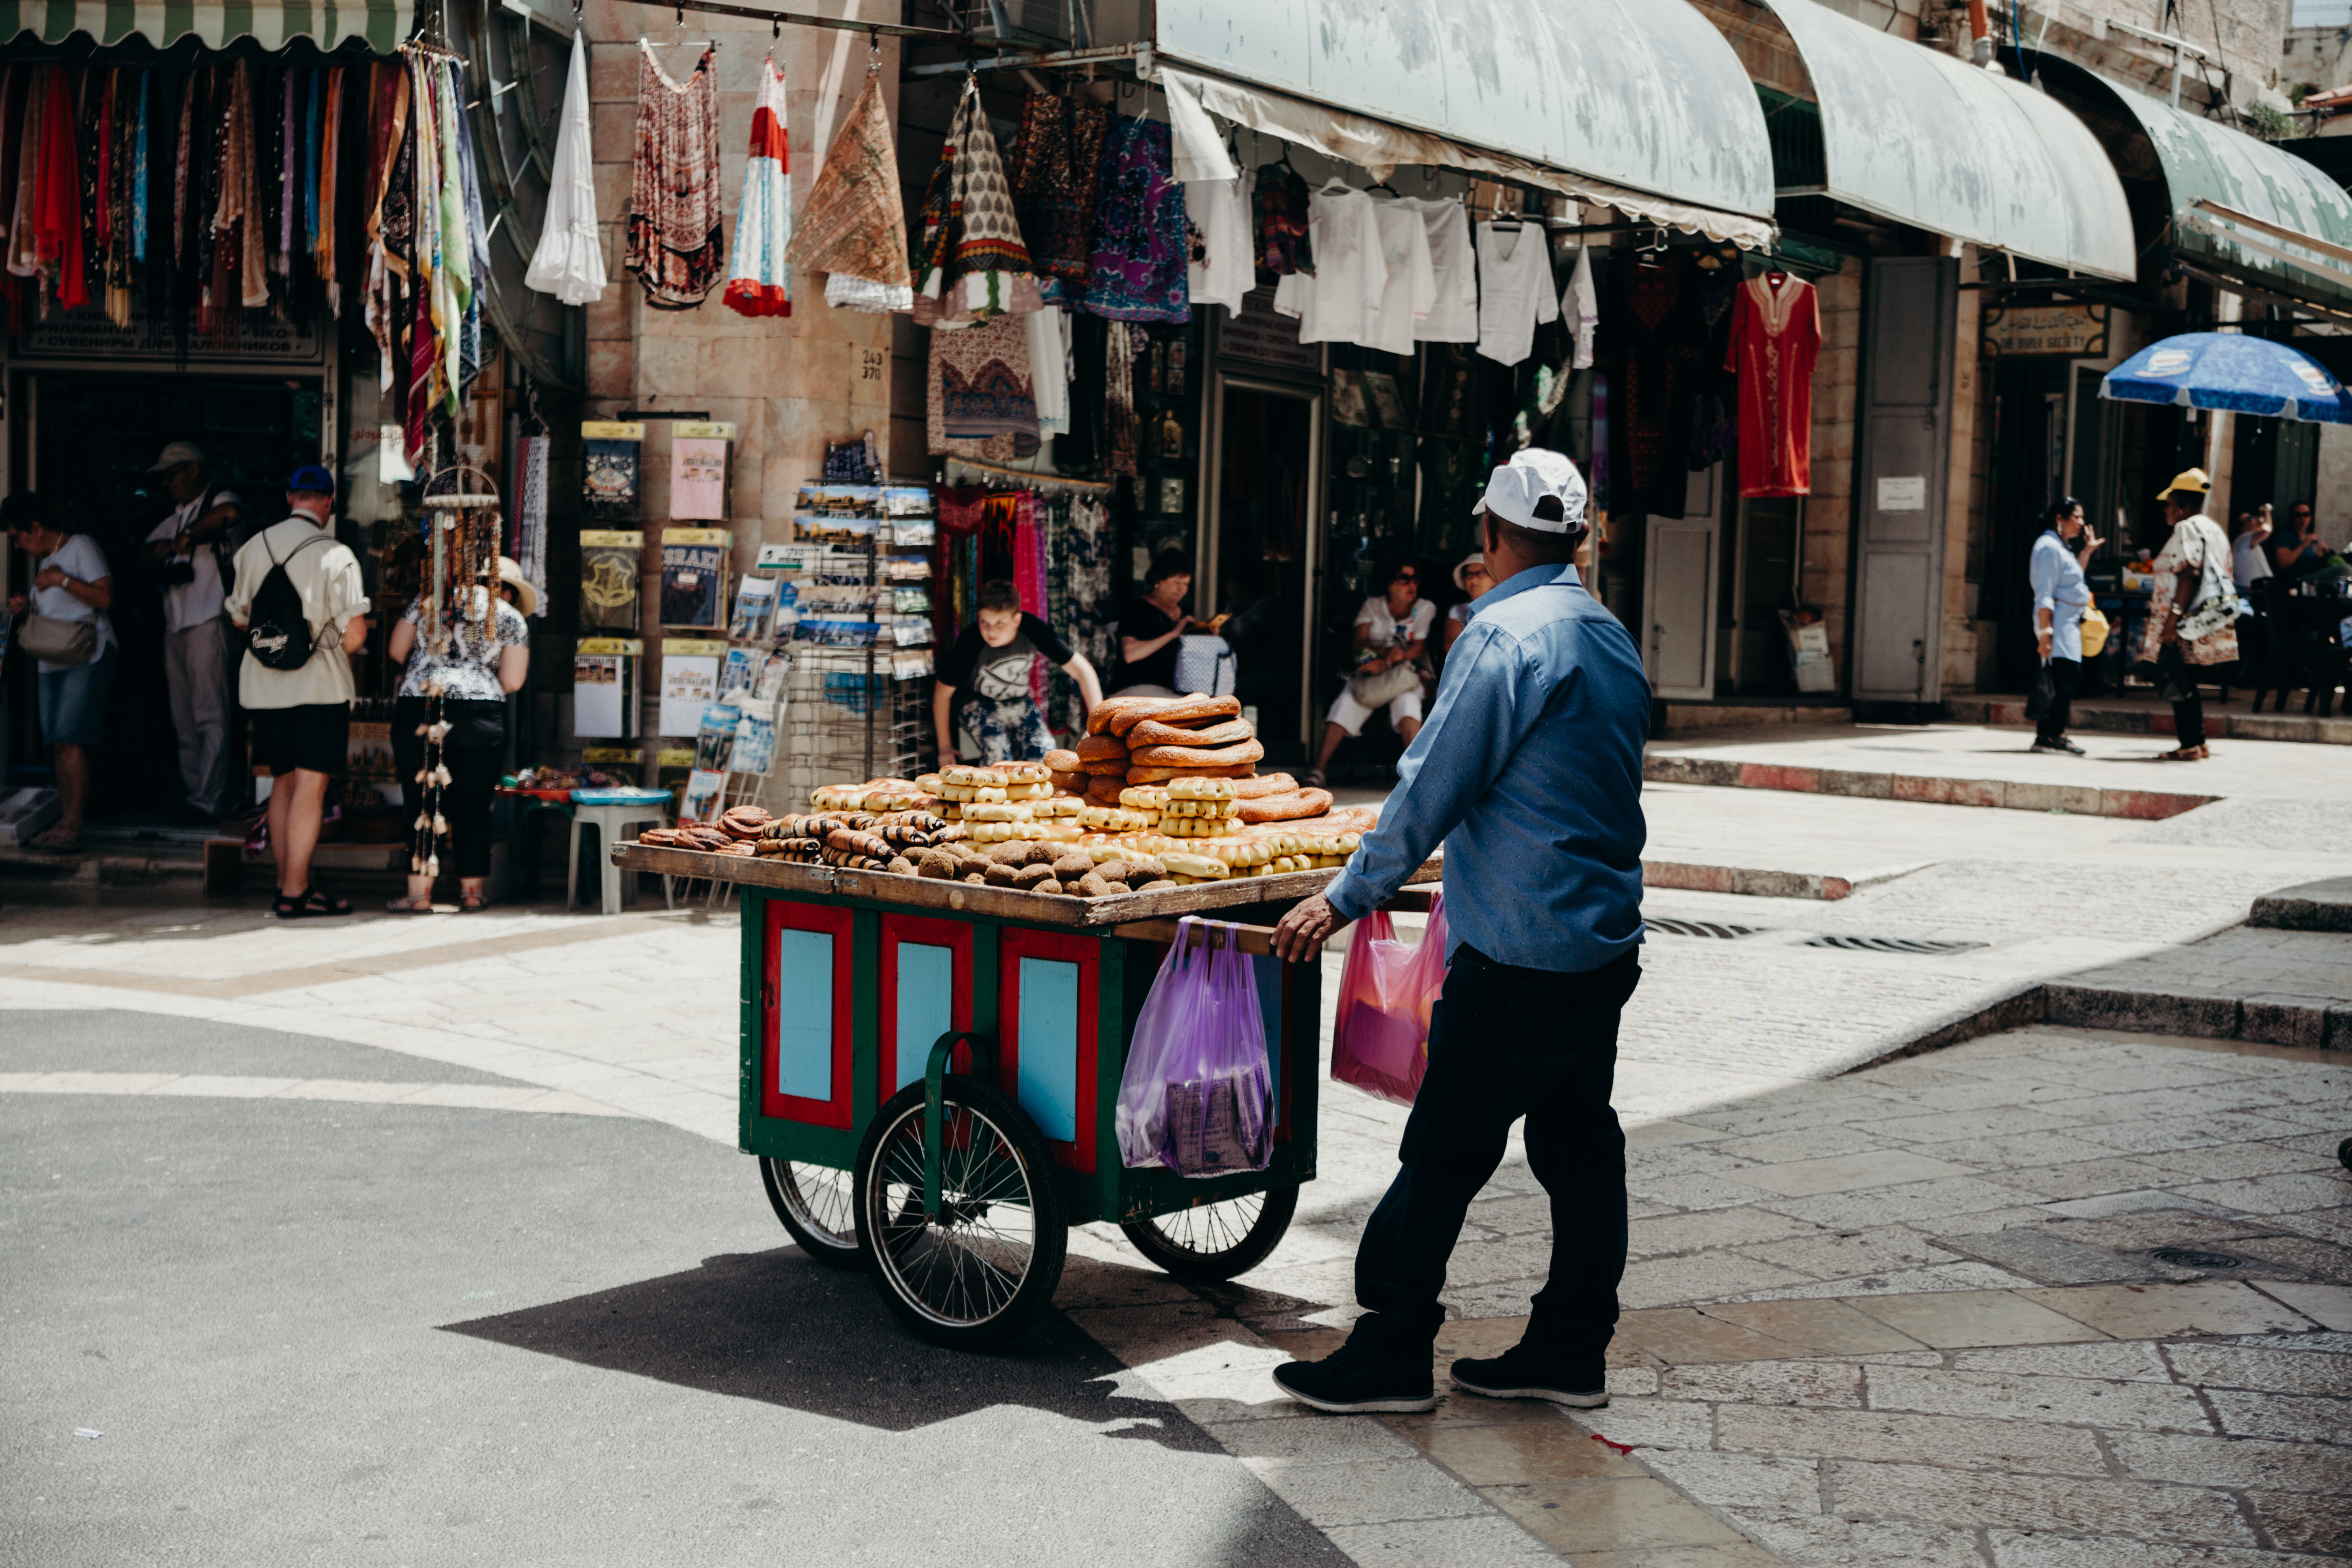 Love the beautiful details on the streets of Israel.